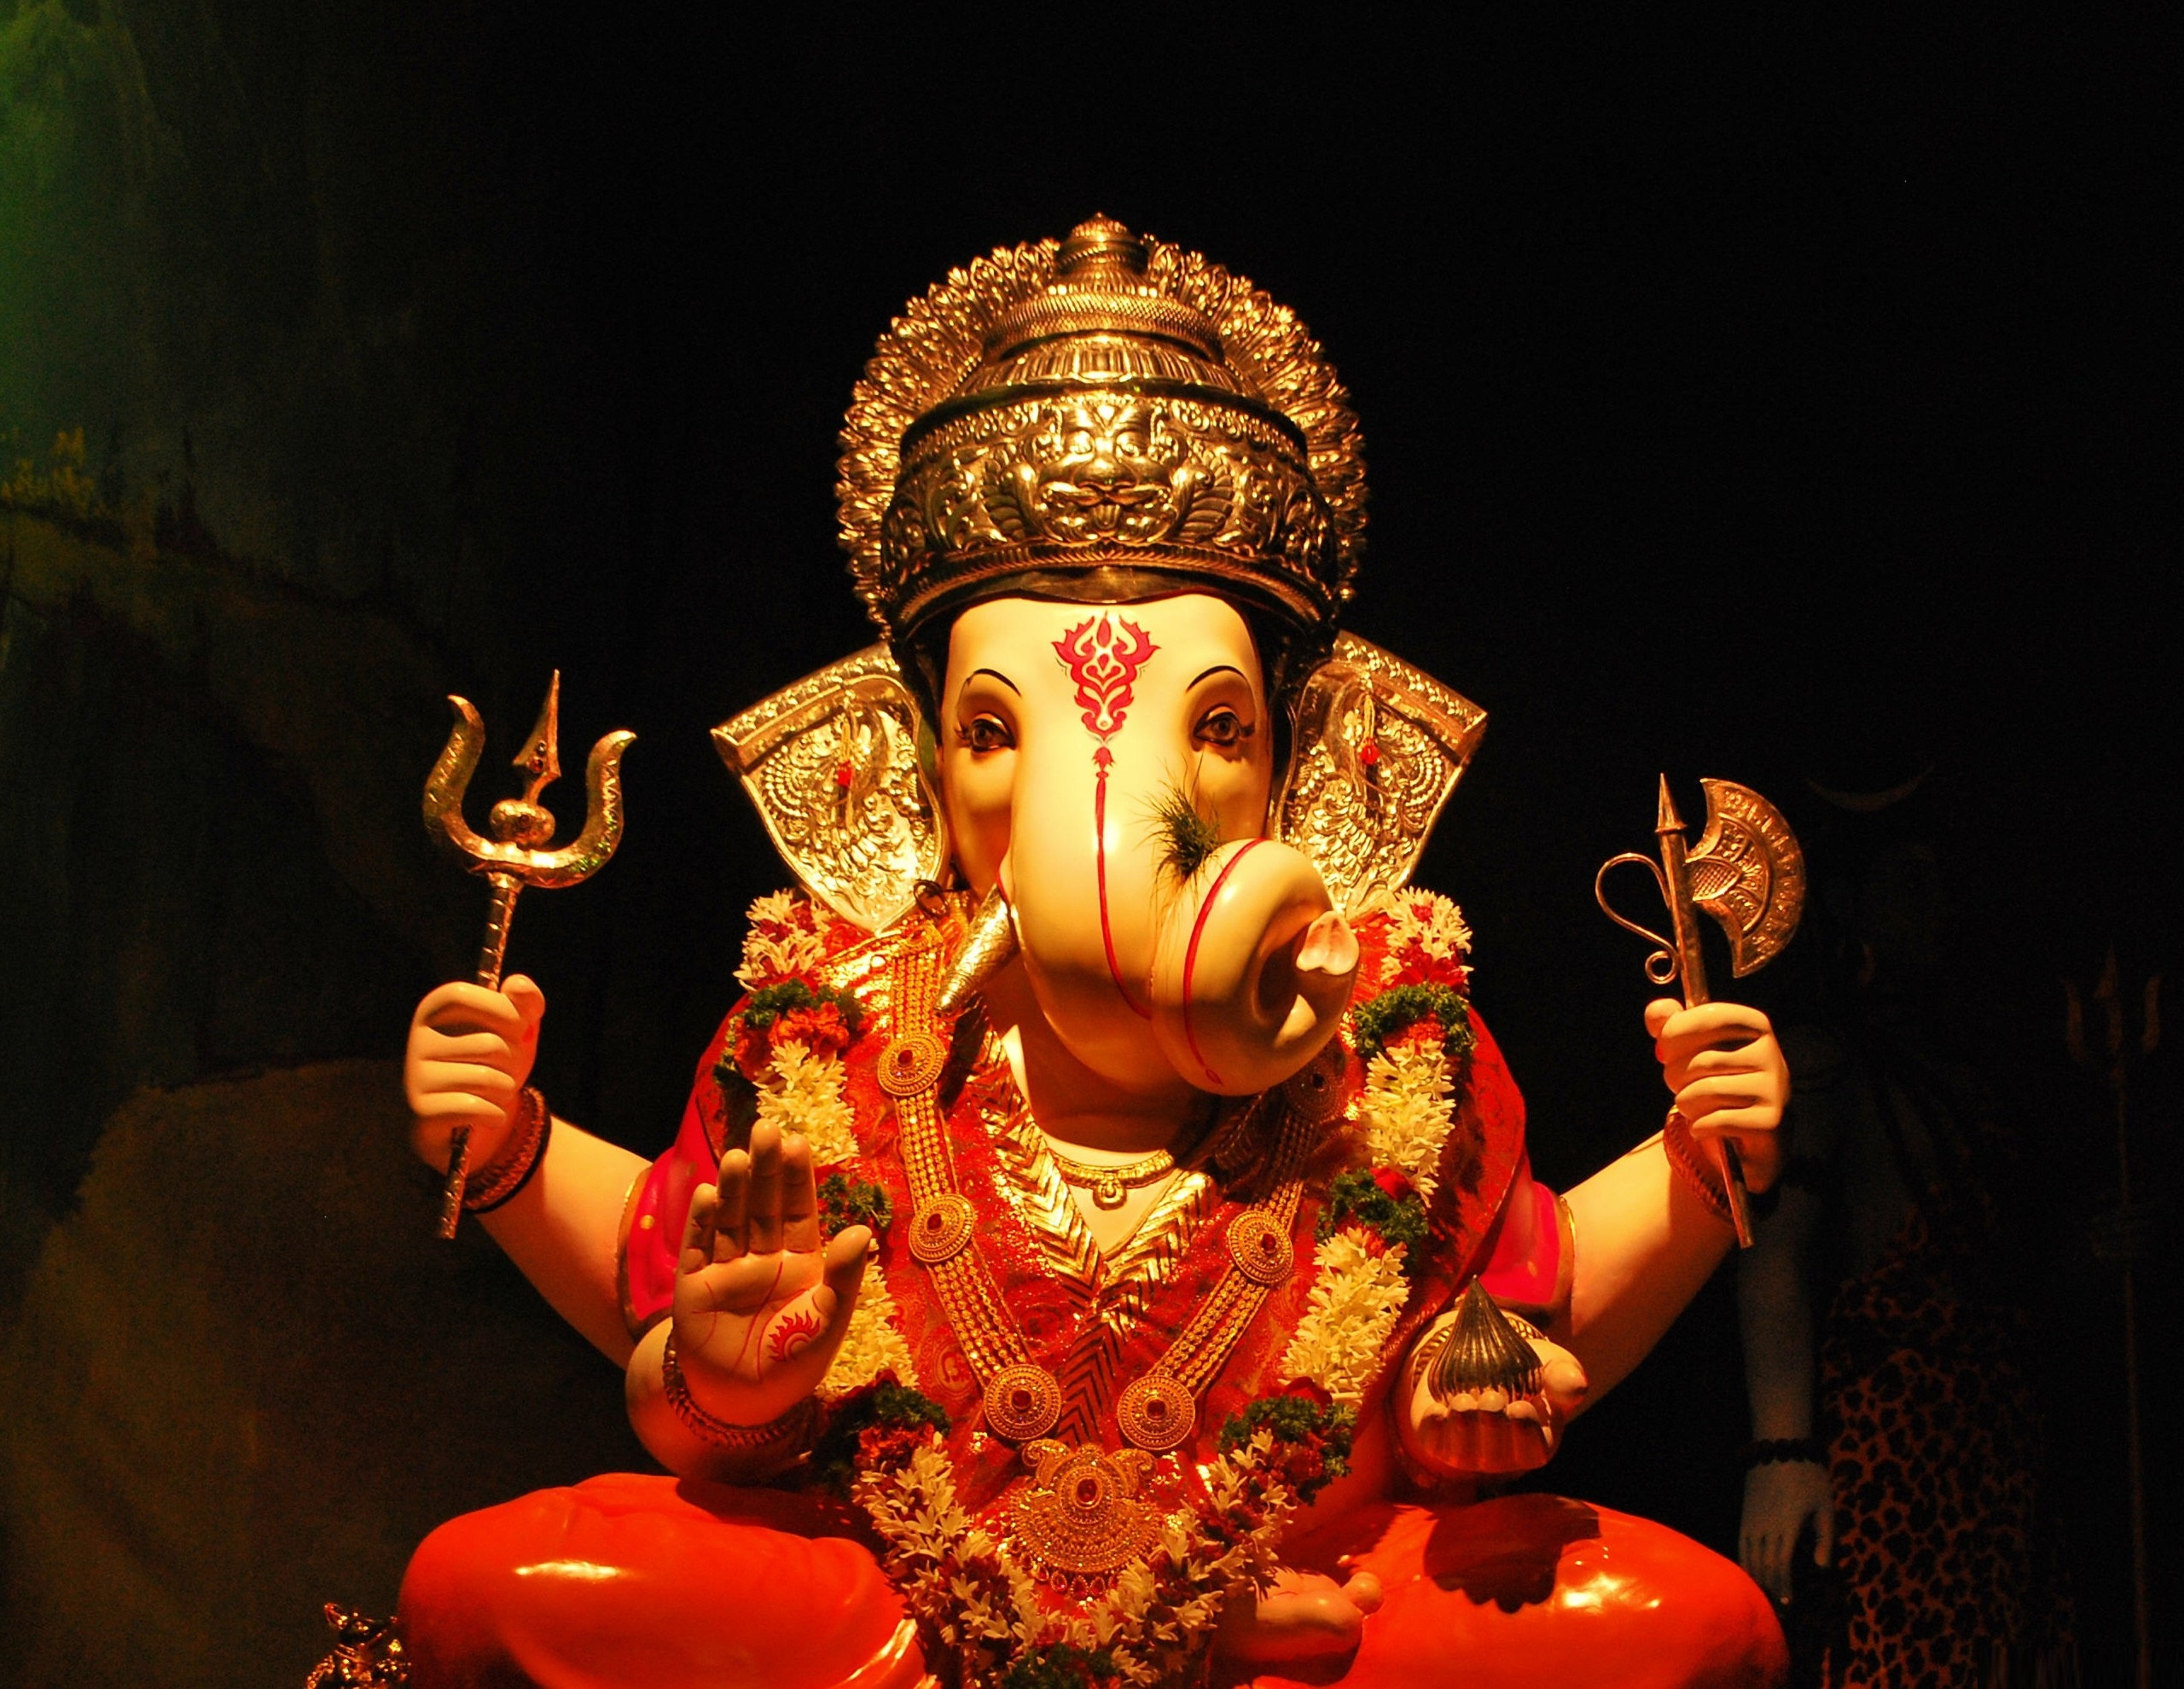 50 Lord Ganesha Photo GANPATI IMAGES WALLPAPER FOR FREE